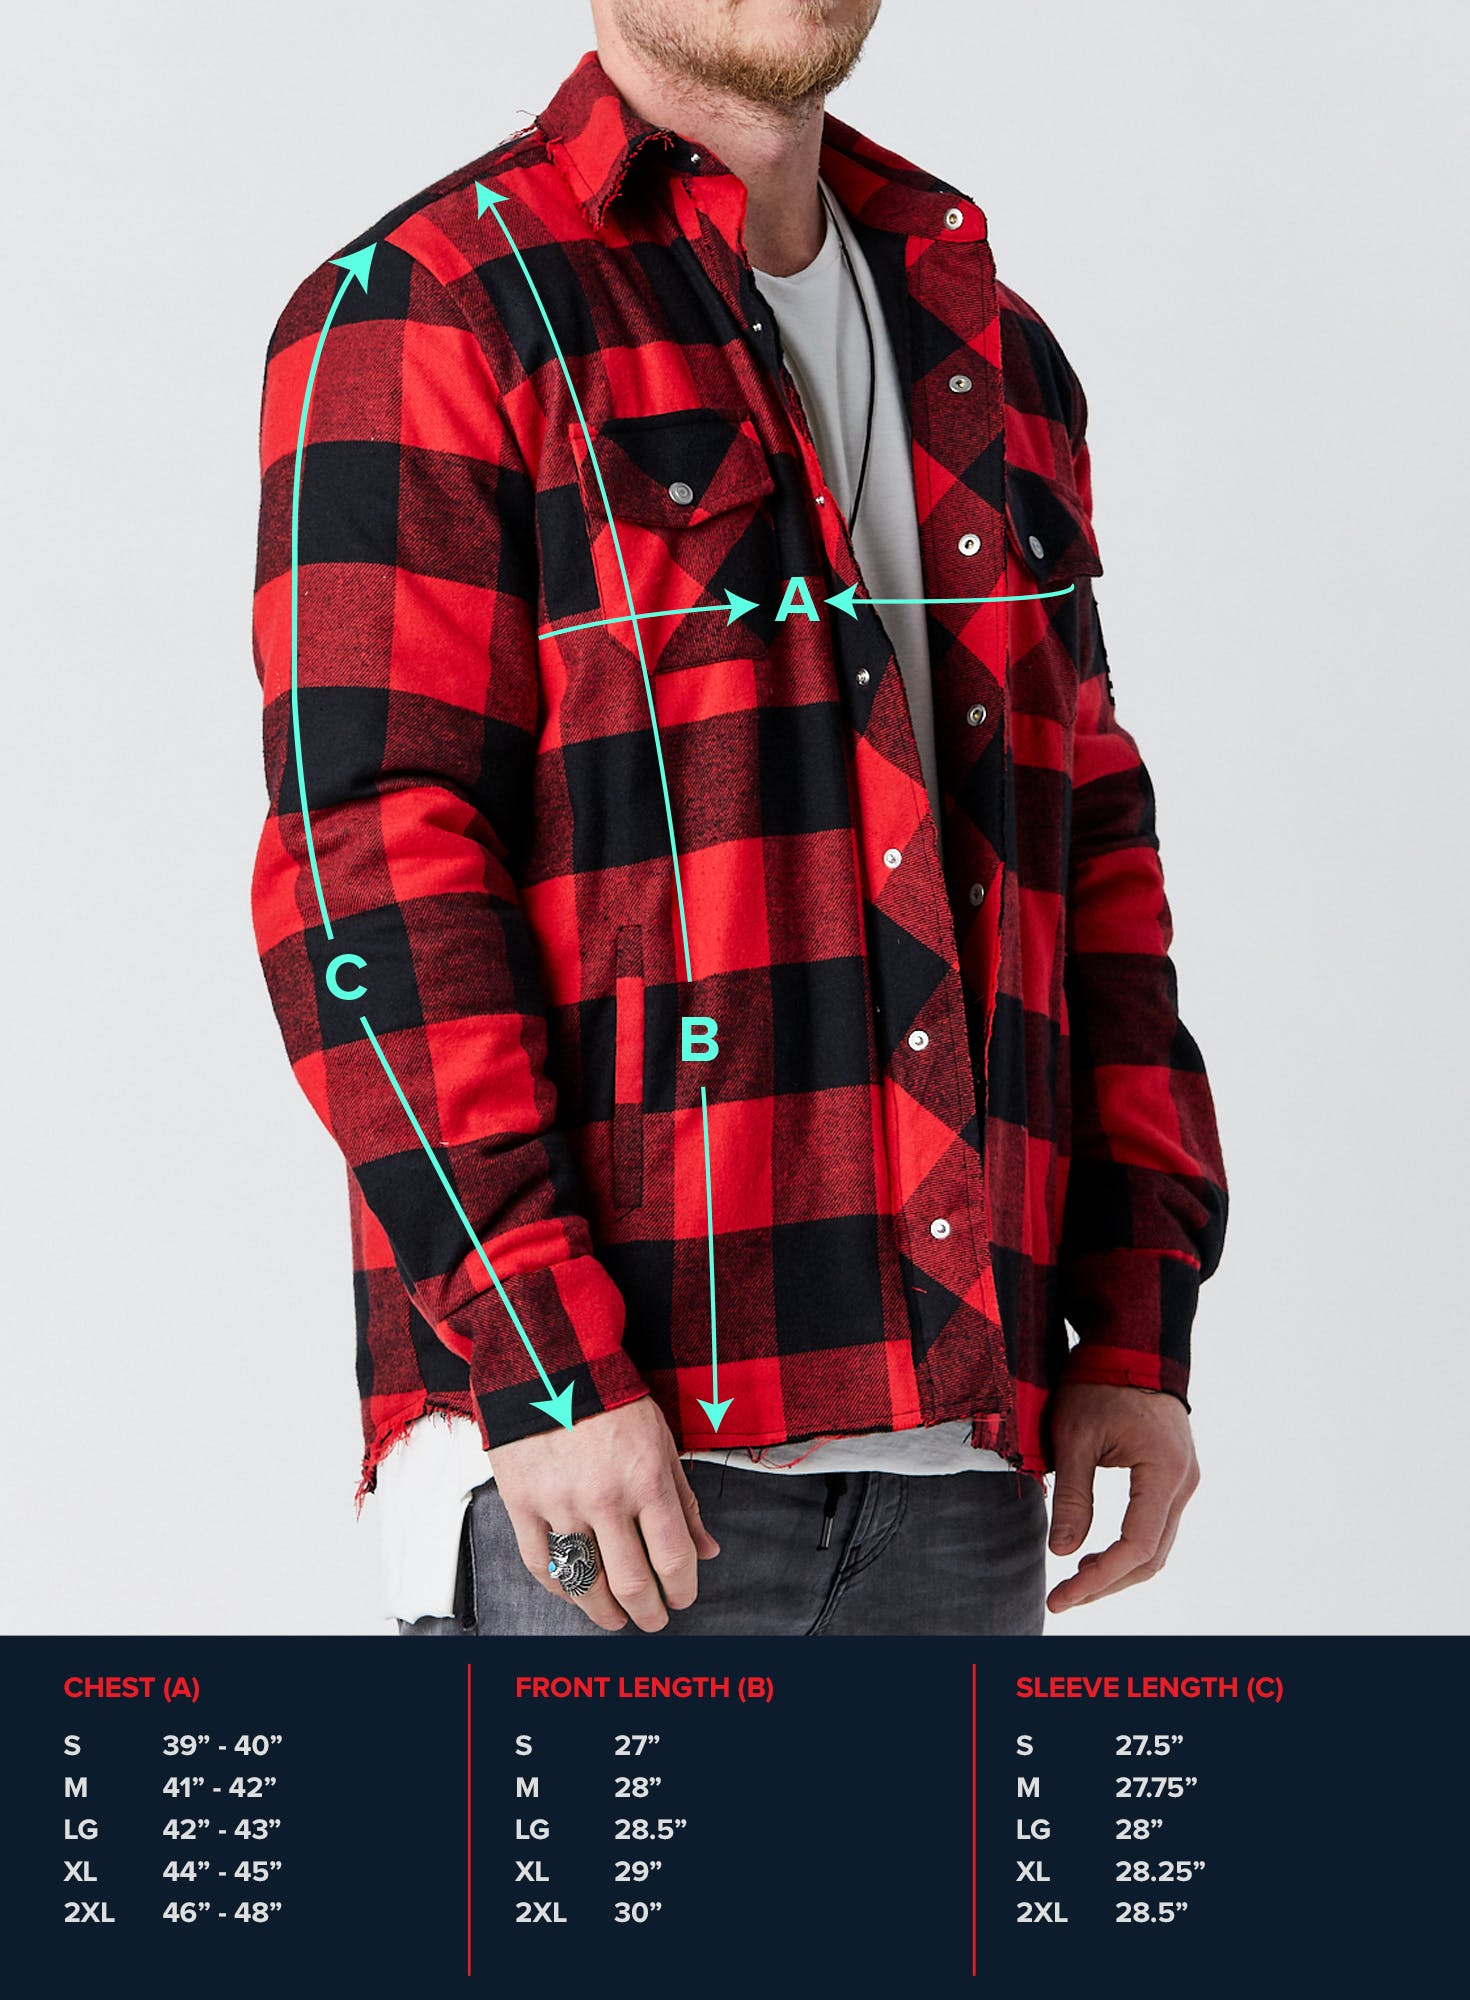 The Flannel Jacket Bonus Image